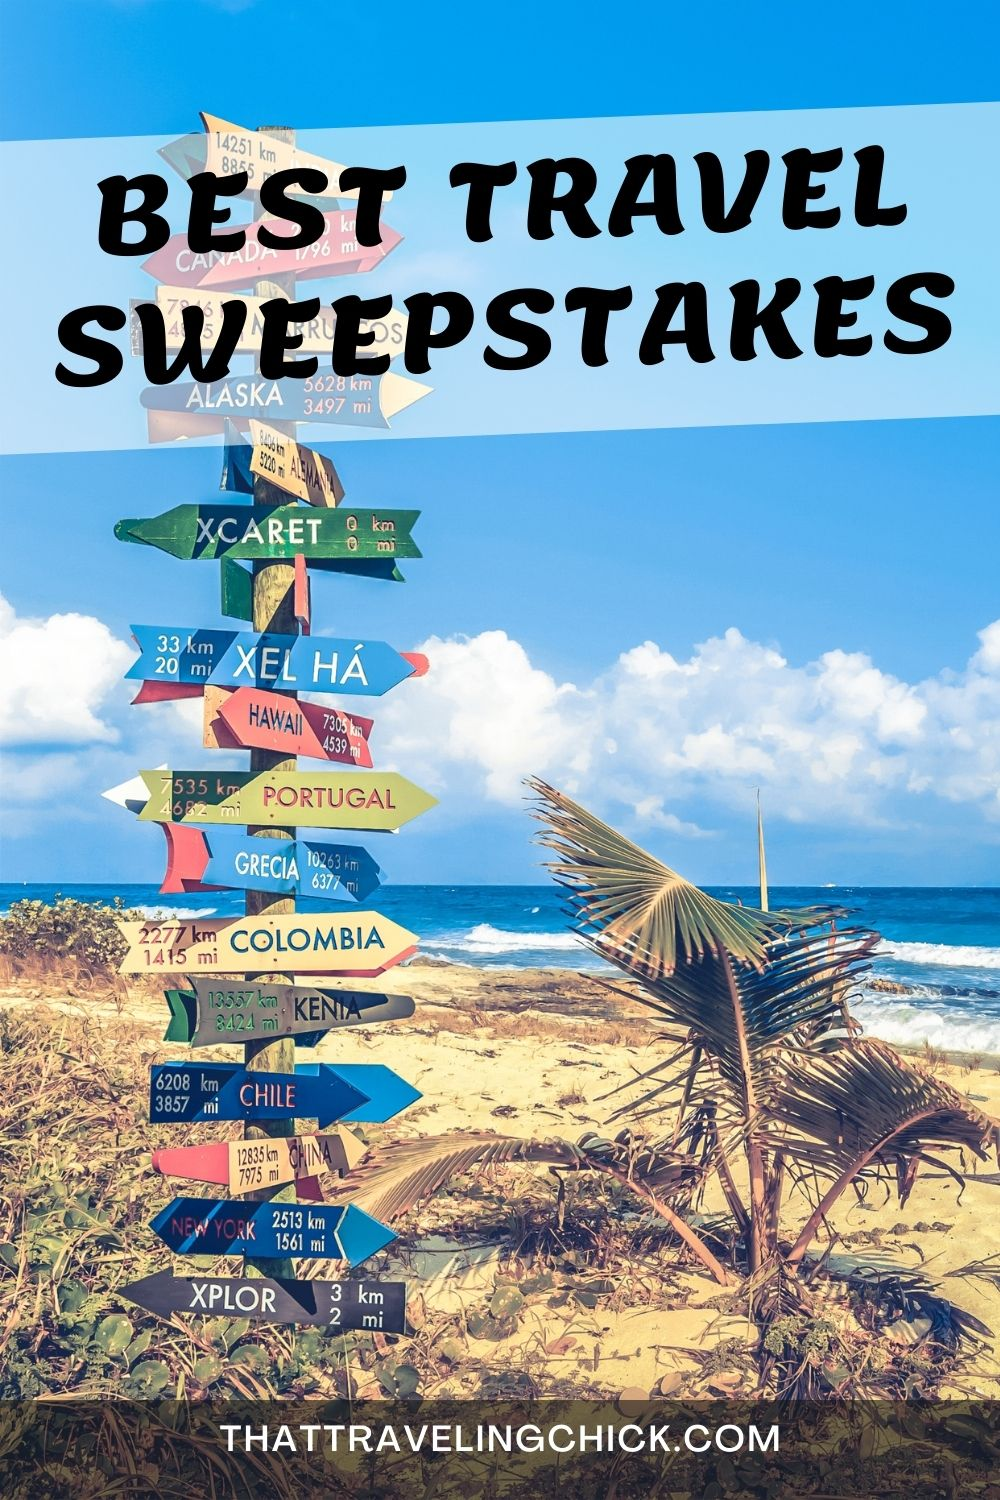 Best Travel Sweepstakes #travel #travelsweepstakes #wintravel